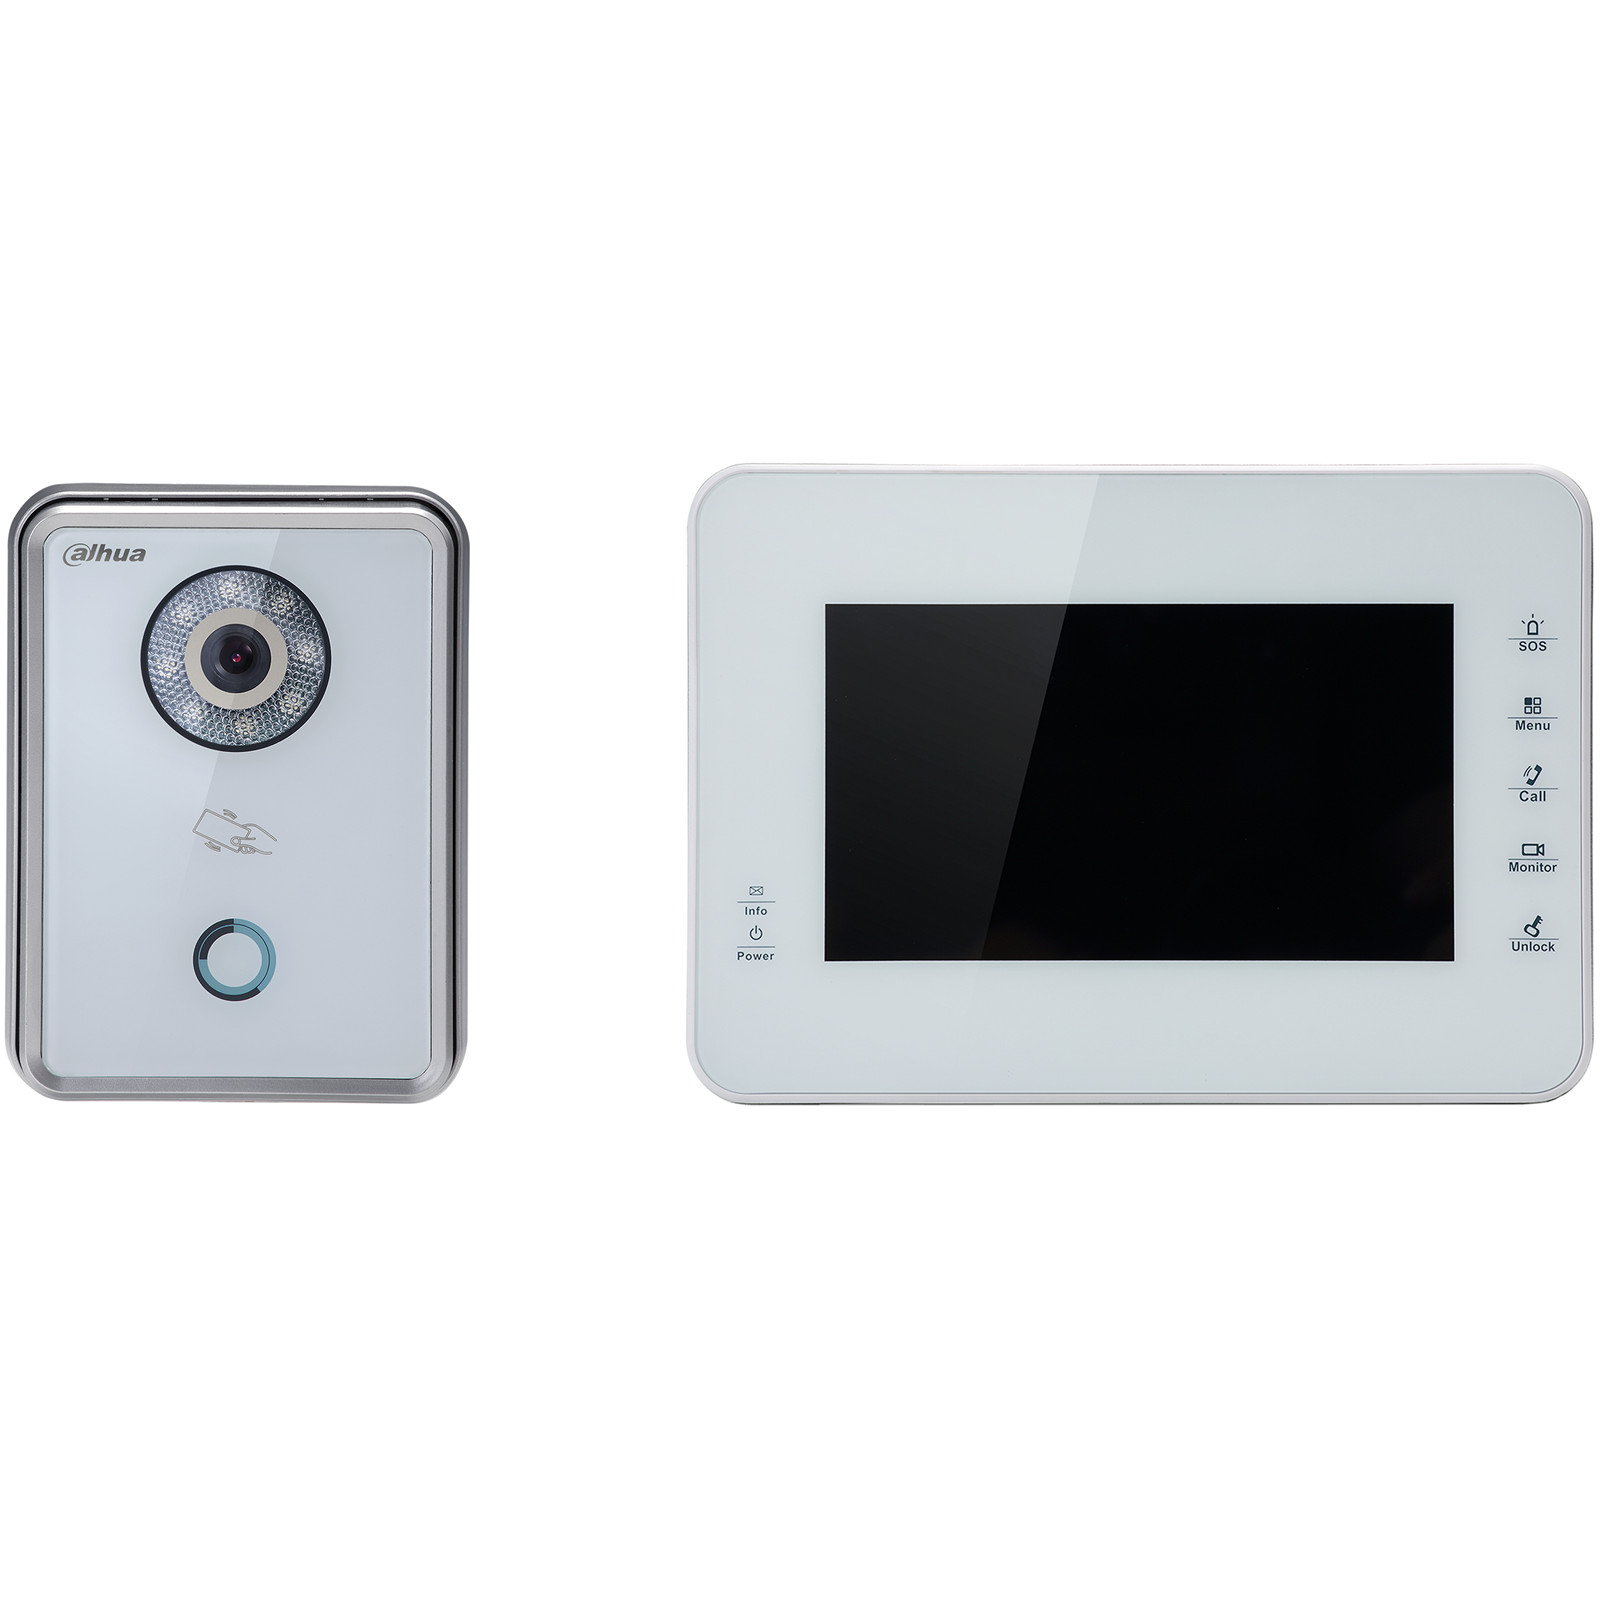 Buy the Dahua VTO6210BW + VTH1560BW Wired IP Video Intercom System